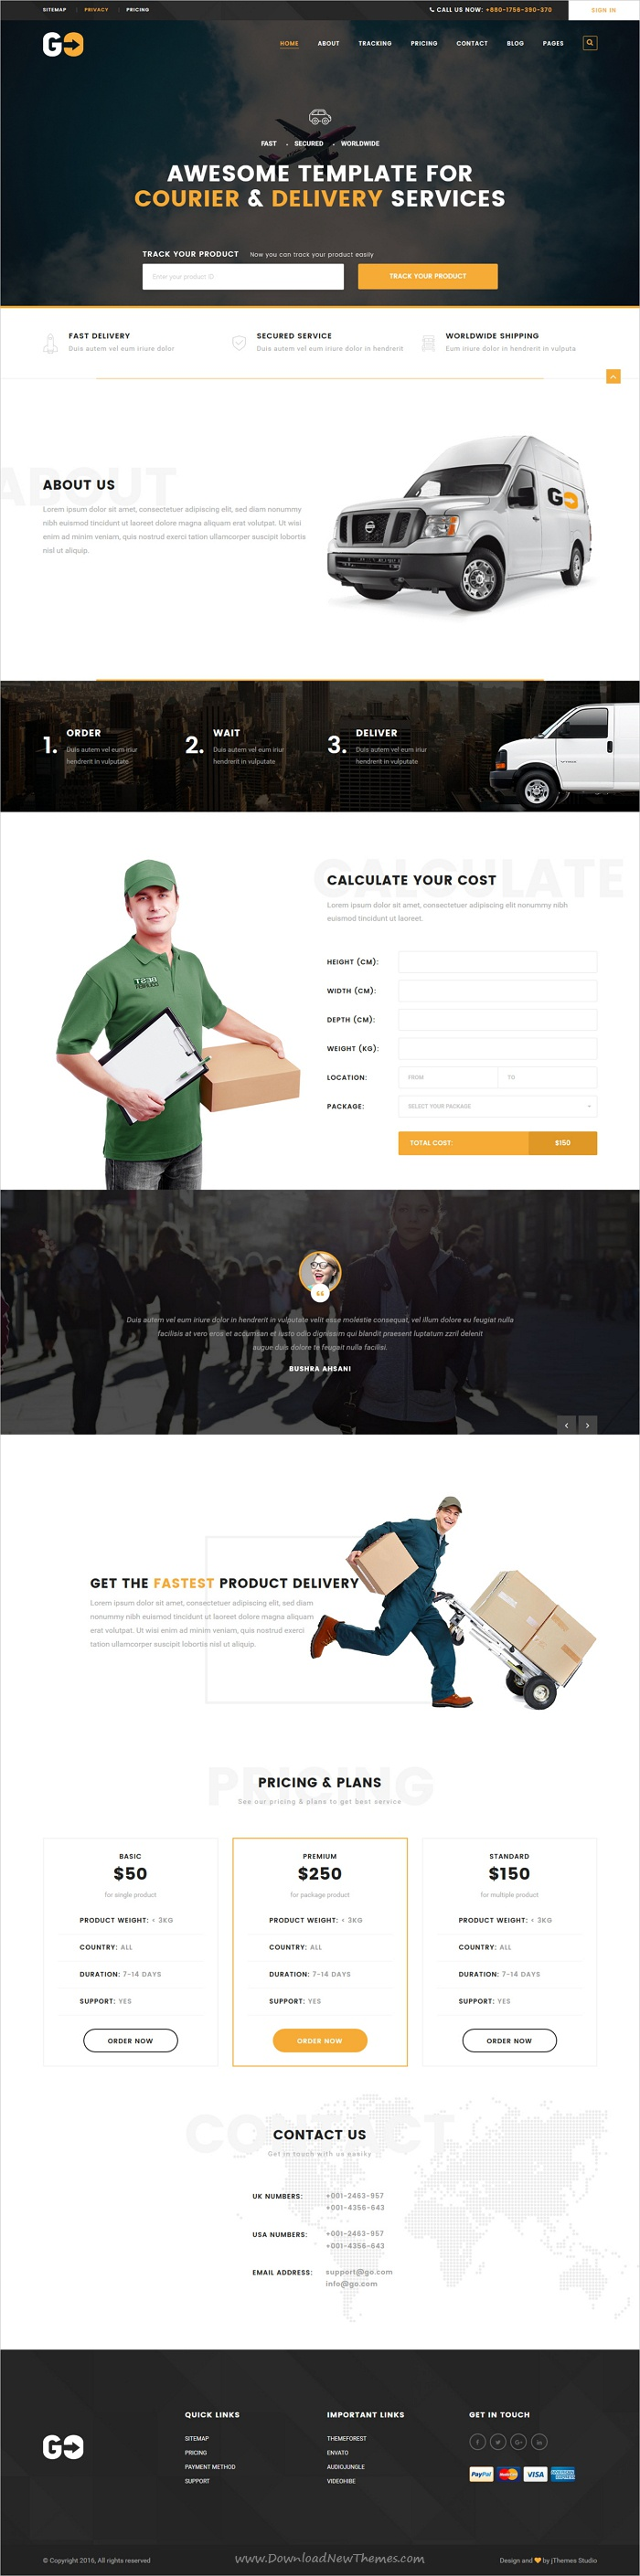 go a courier delivery service html template